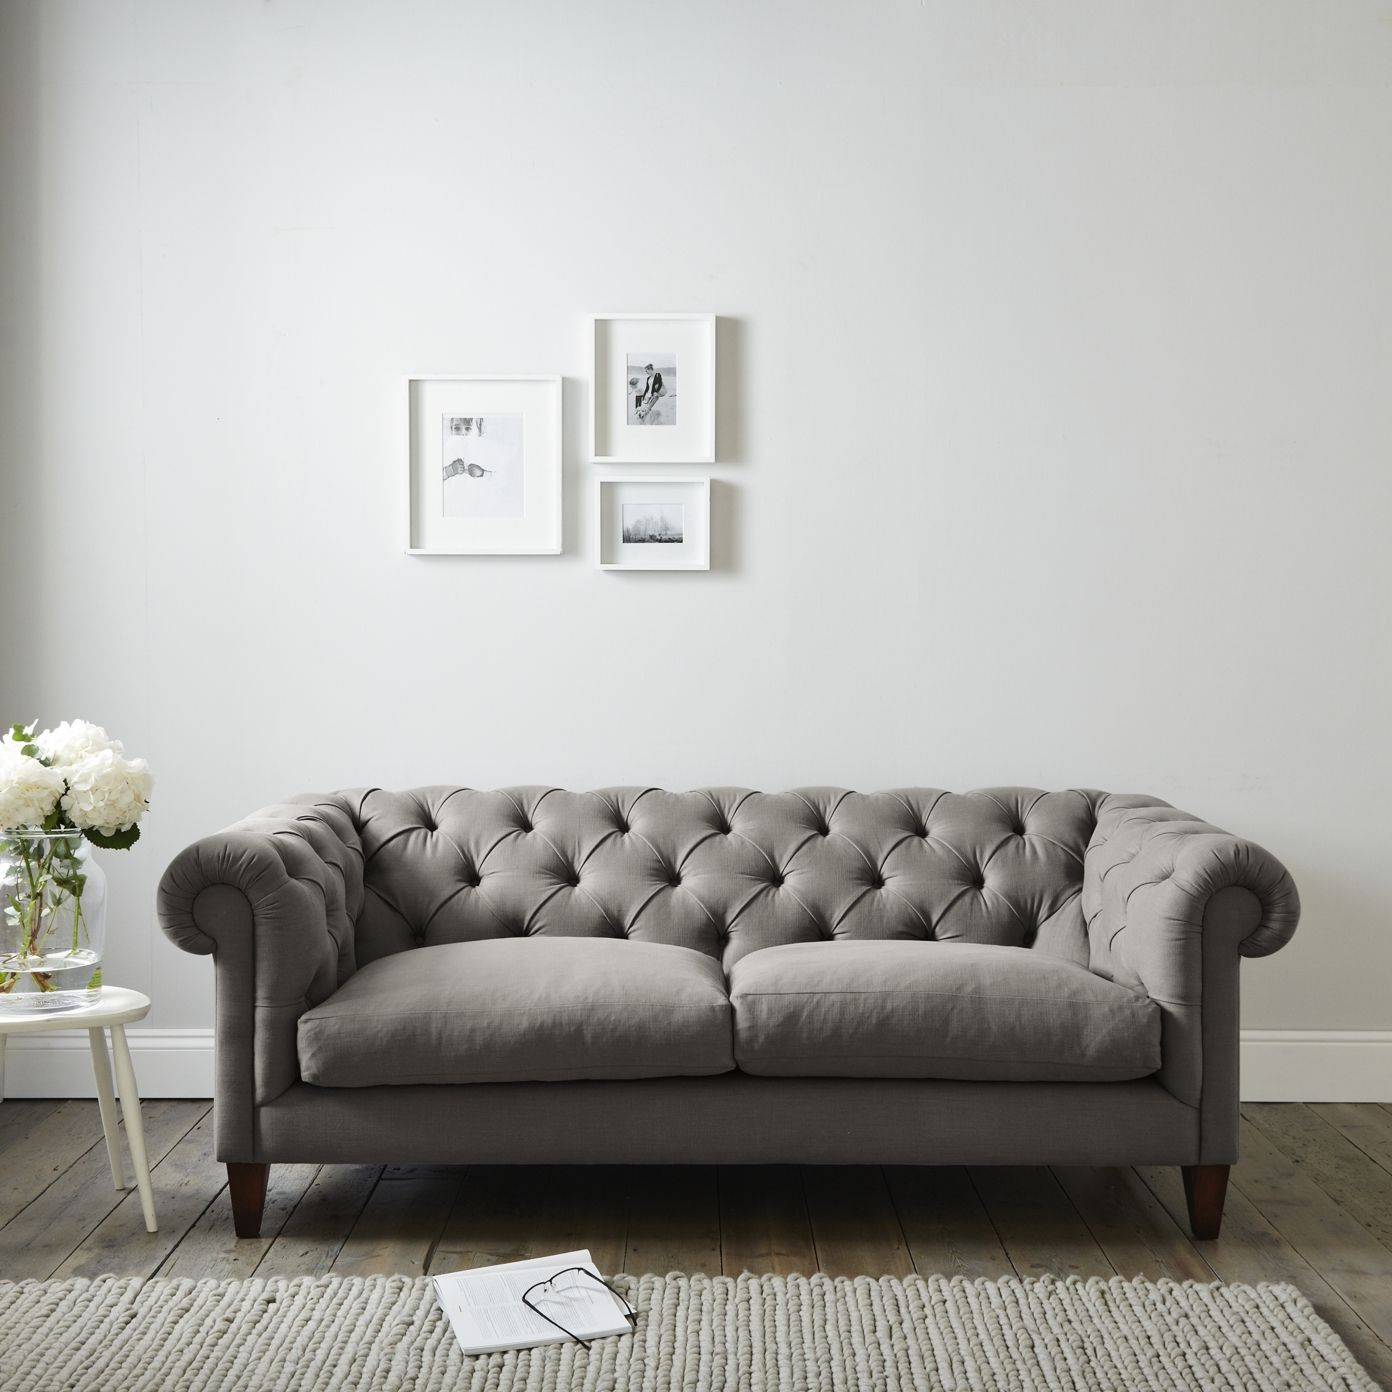 Large Hampstead Sofa Cotton The White Company Final Living - Hampstead furniture